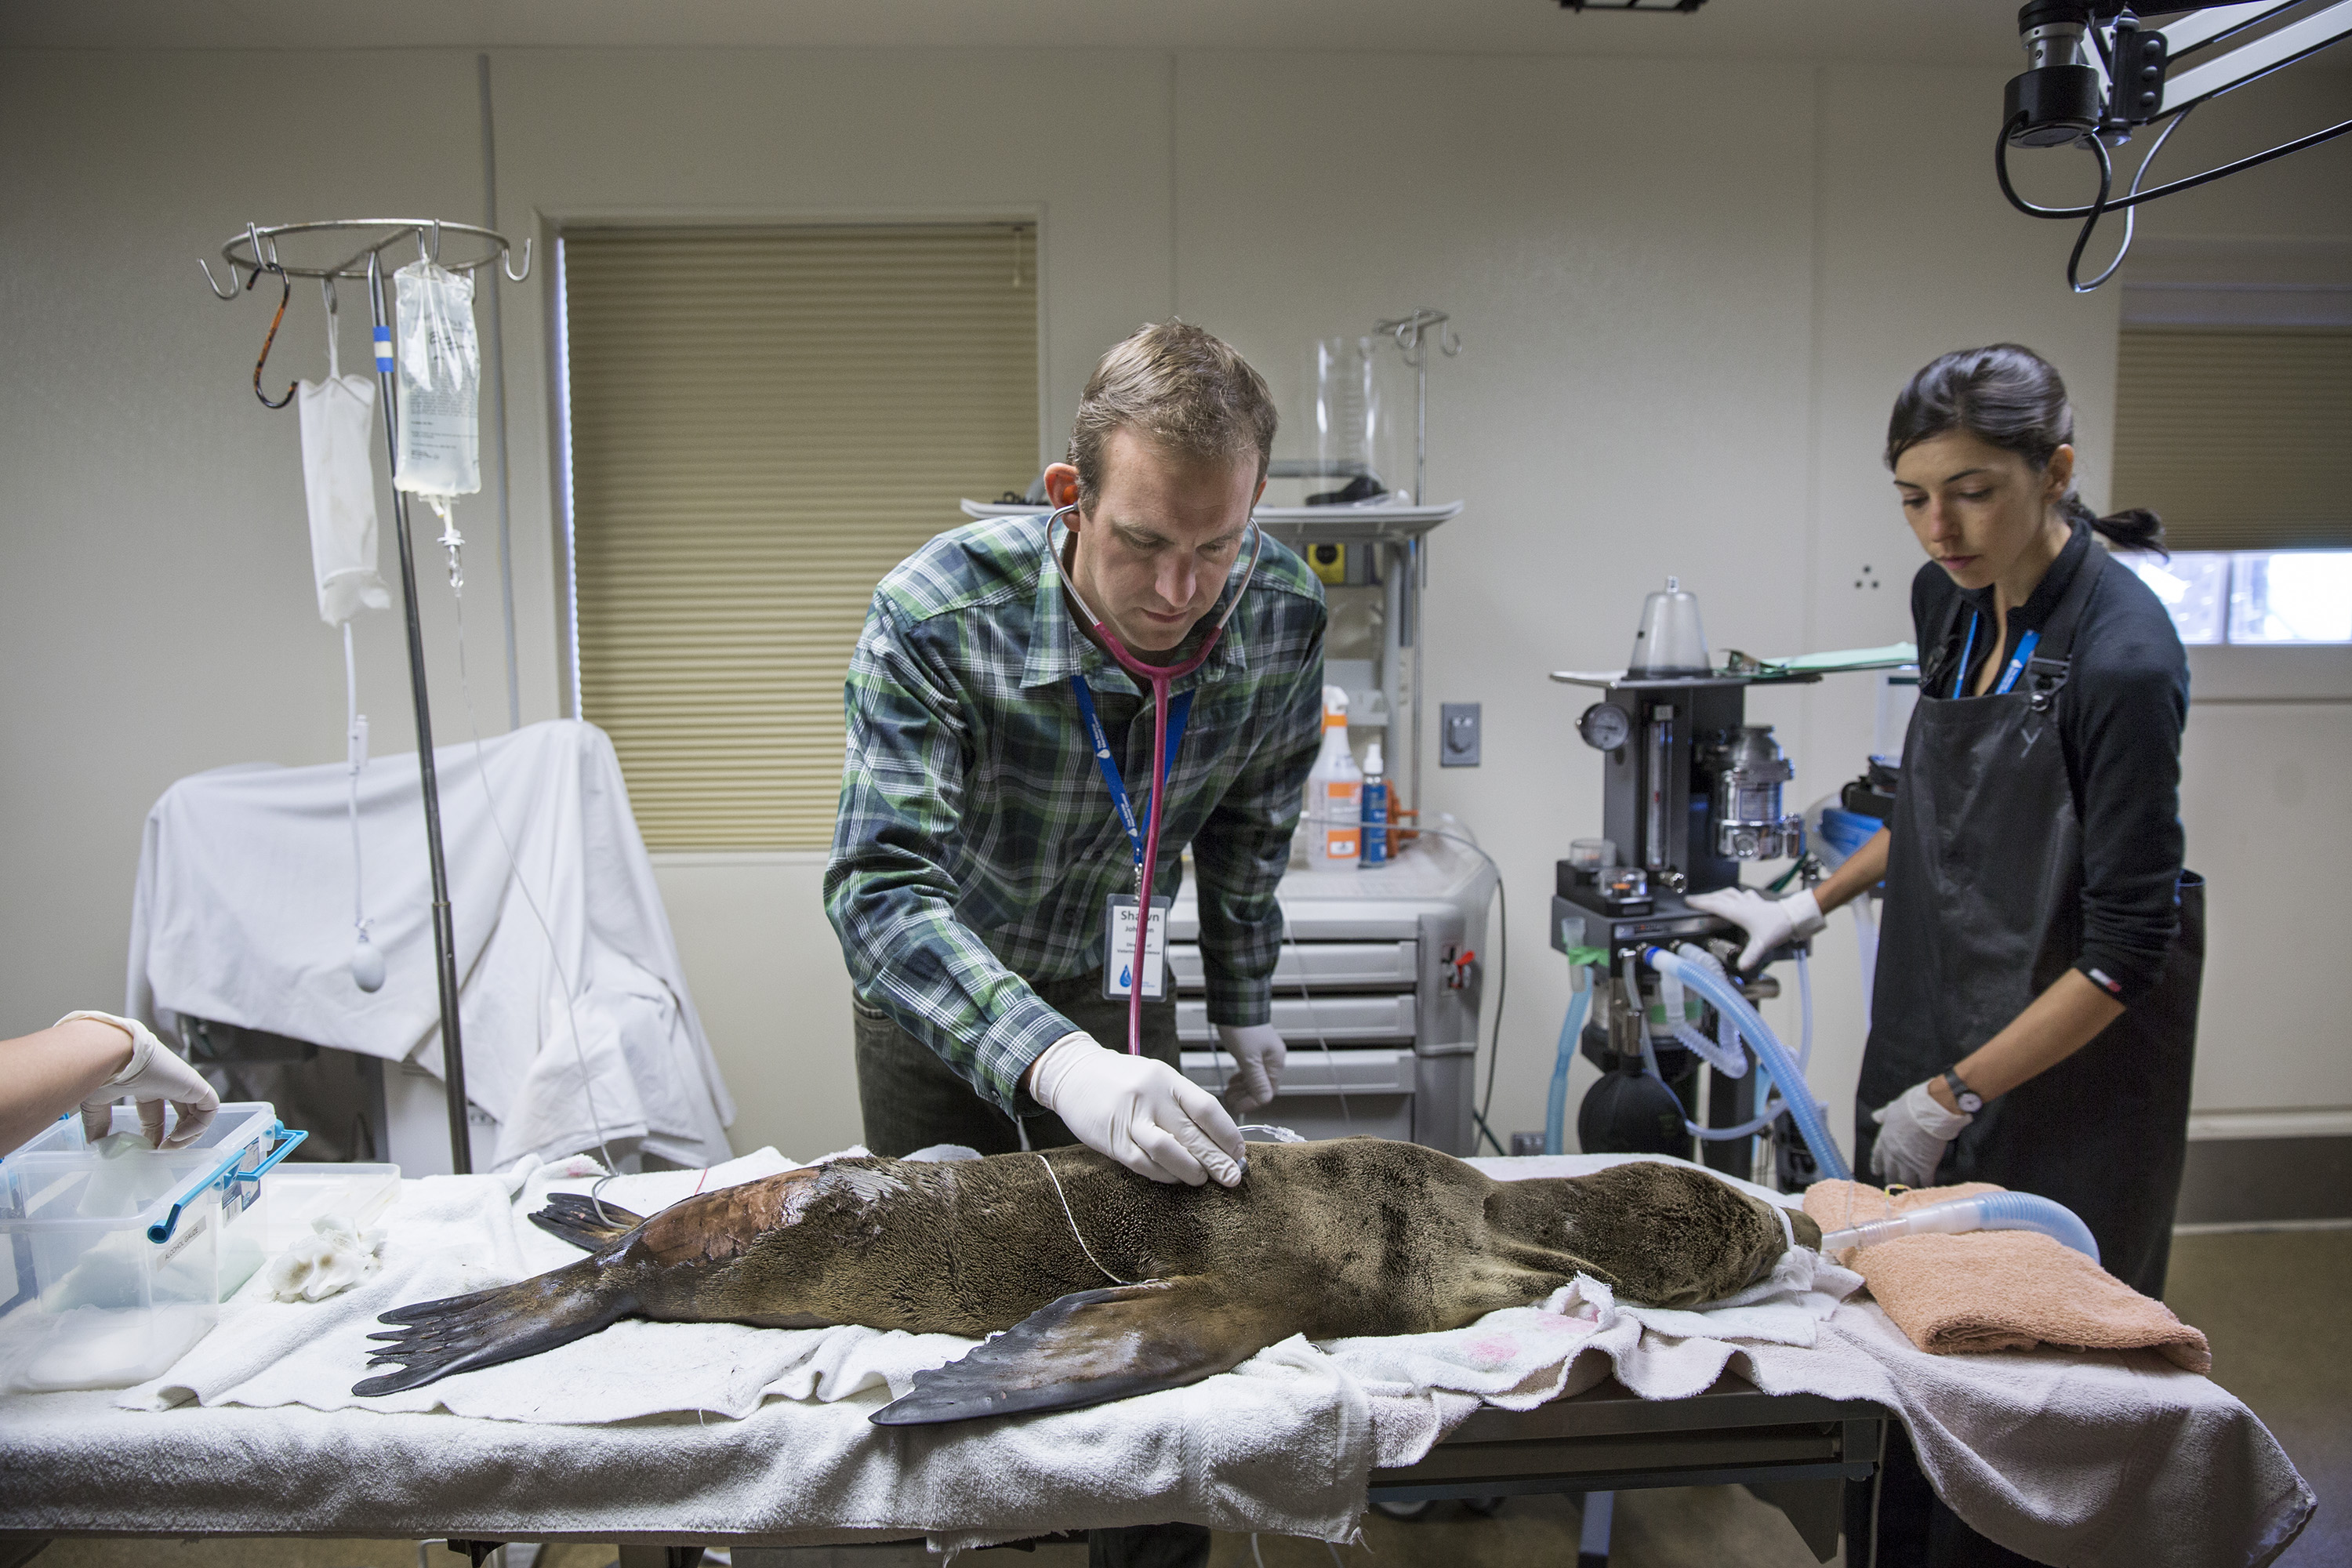 Dr. Shawn Johnson, Director of Veterinary Science, listens to the lungs of a young sea lion under anesthesia at the Marine Mammal Center in Marin County, Calif. on May 9, 2014.